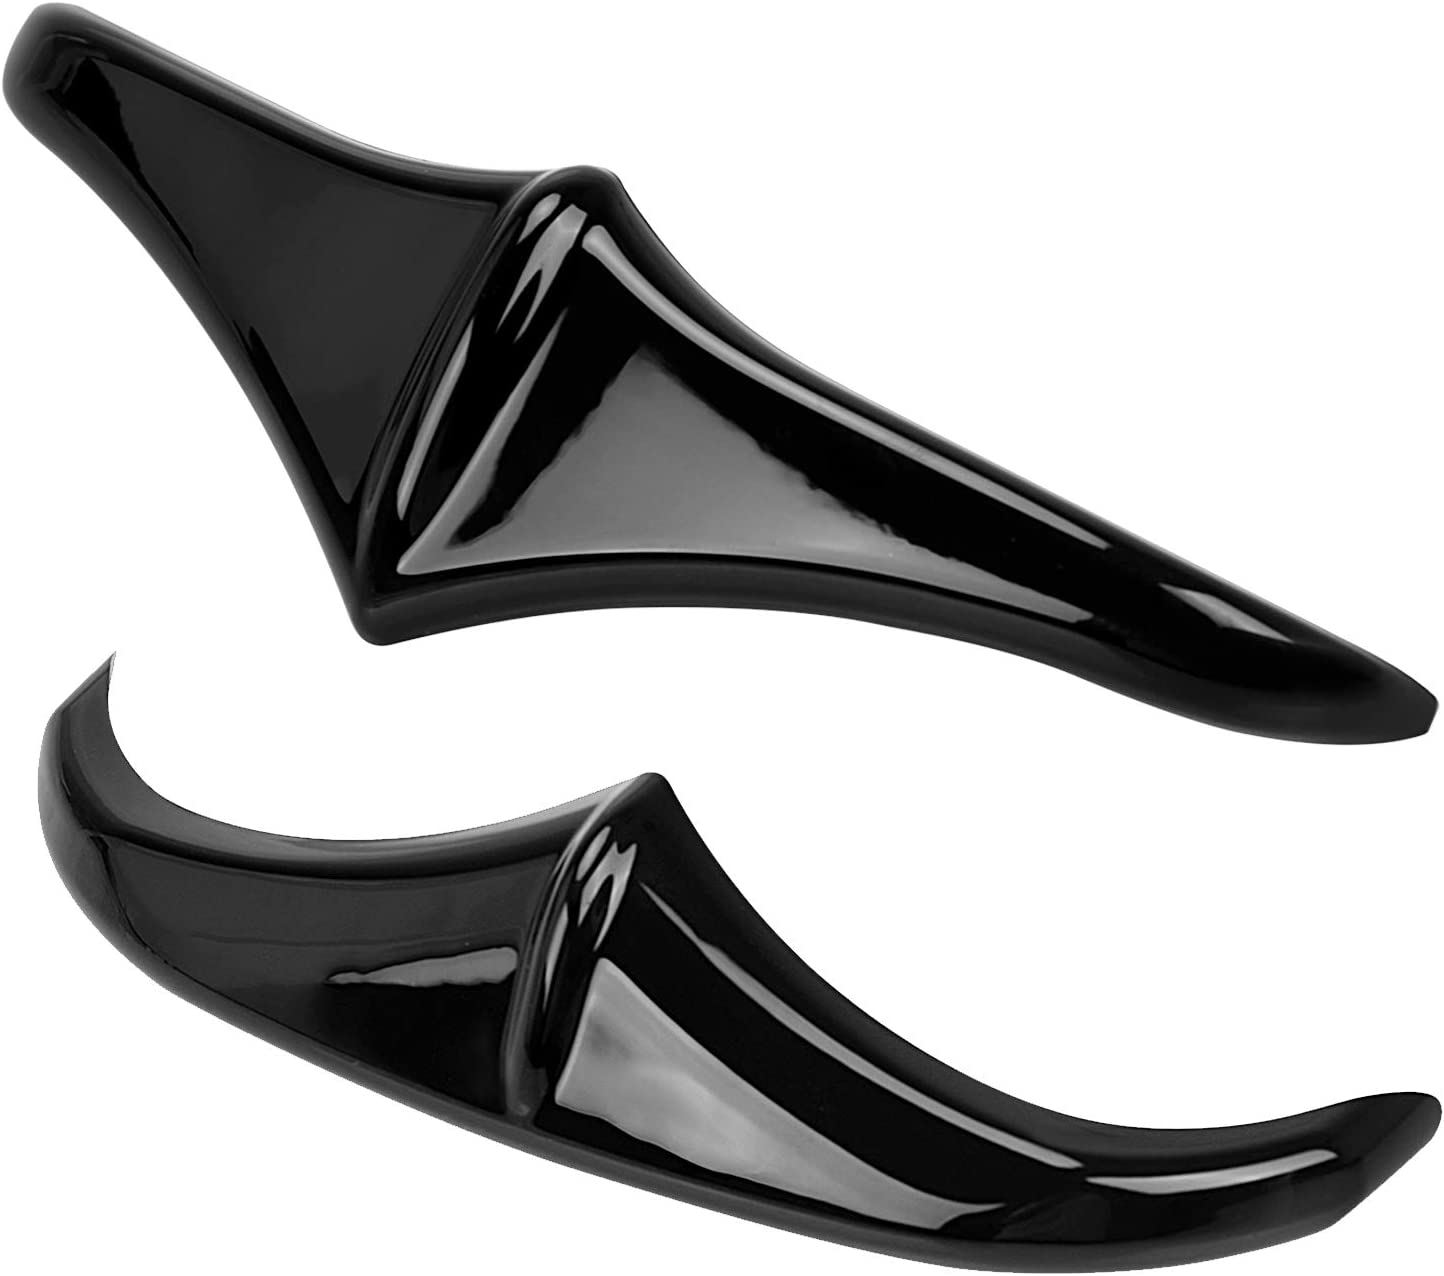 XMMT Motorcycle Leading Edge Front Fender Accent for Harley Touring Street Electra Glides Road King Black 1998-2016